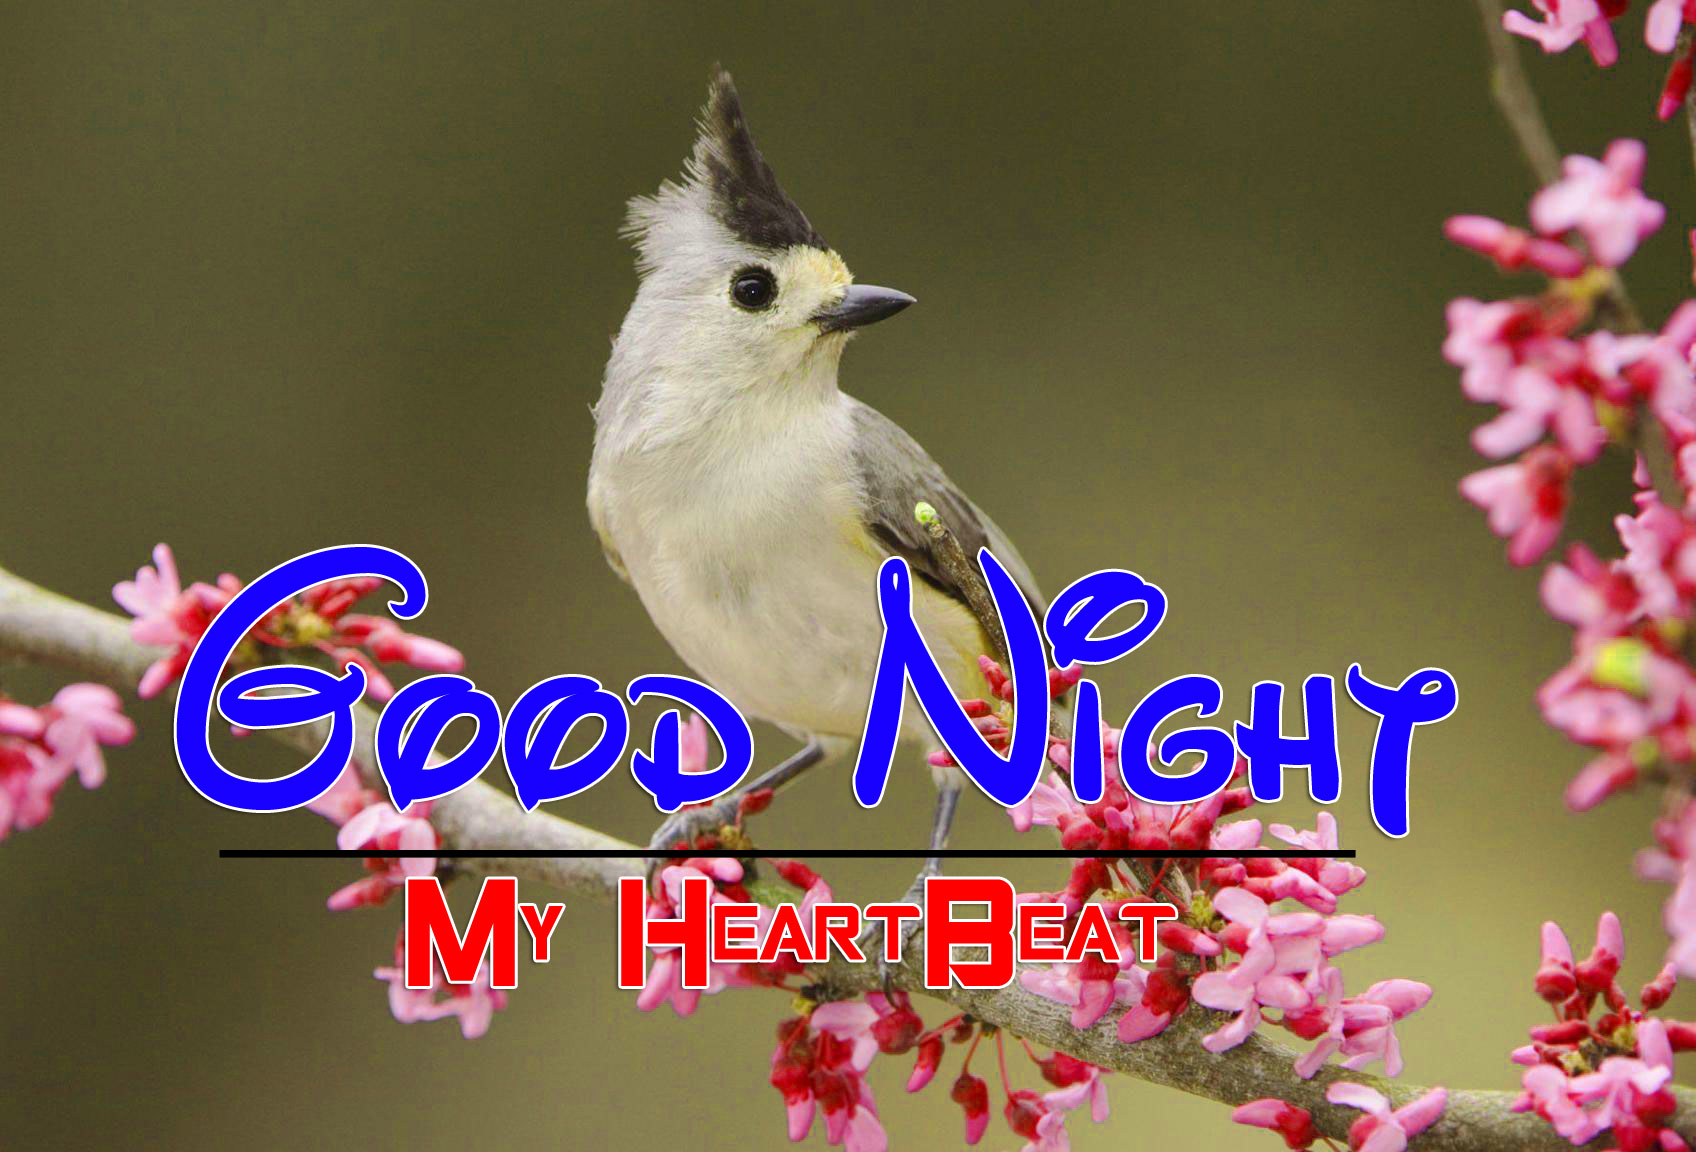 New Good Night Wallpaper Images 1